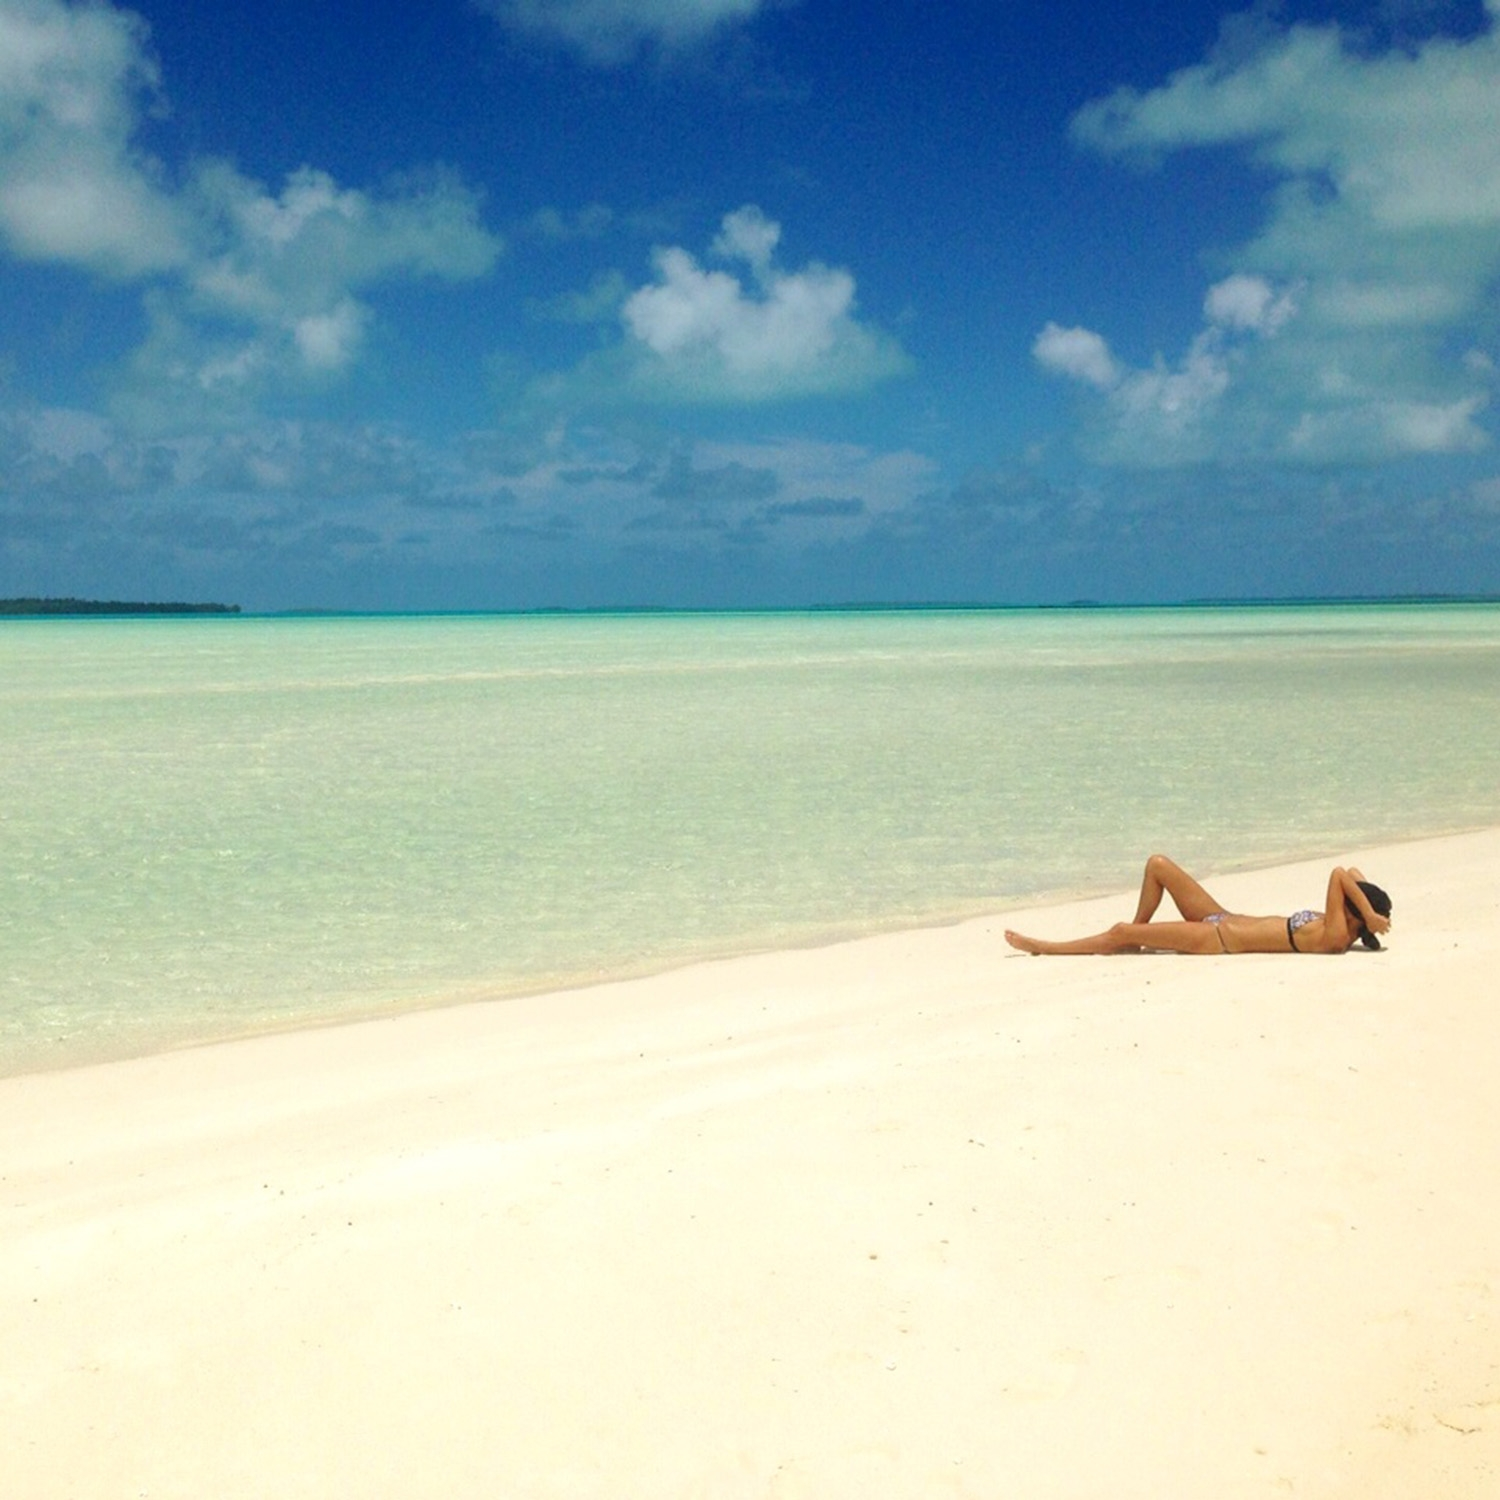 Our model lays along an expansive white beach and looks out across the pale blue ocean